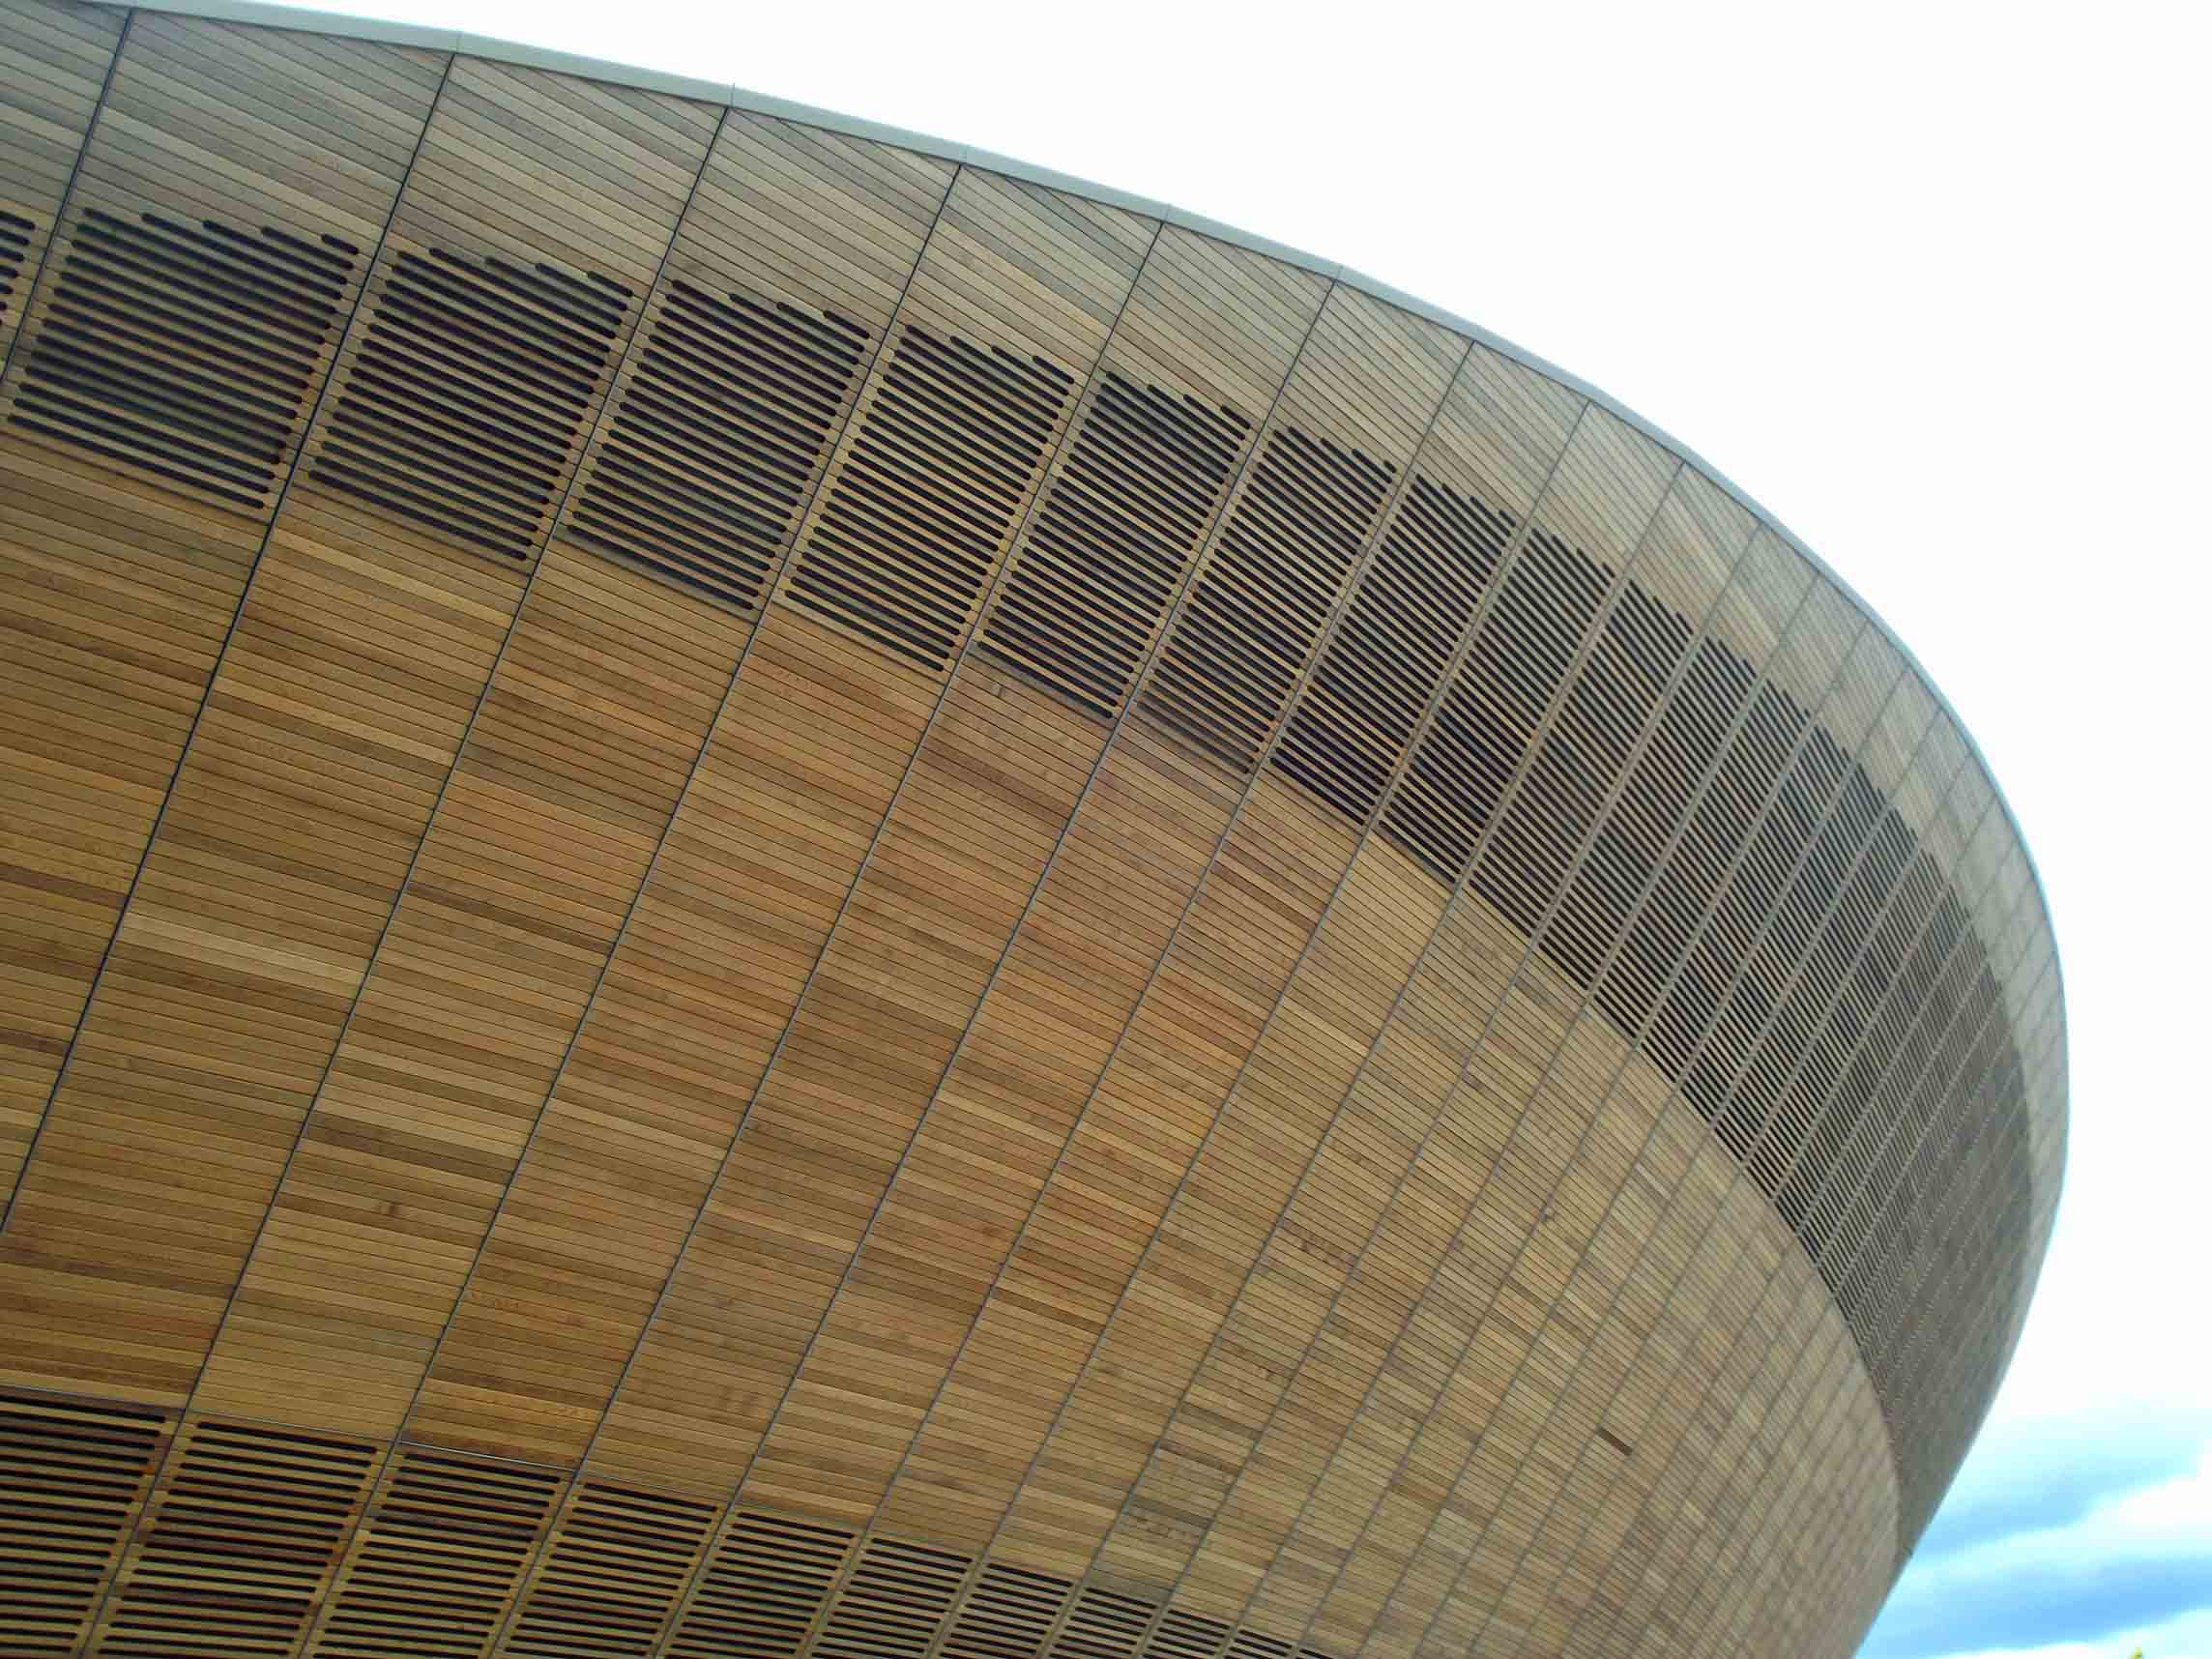 Curved wooden stadium wall